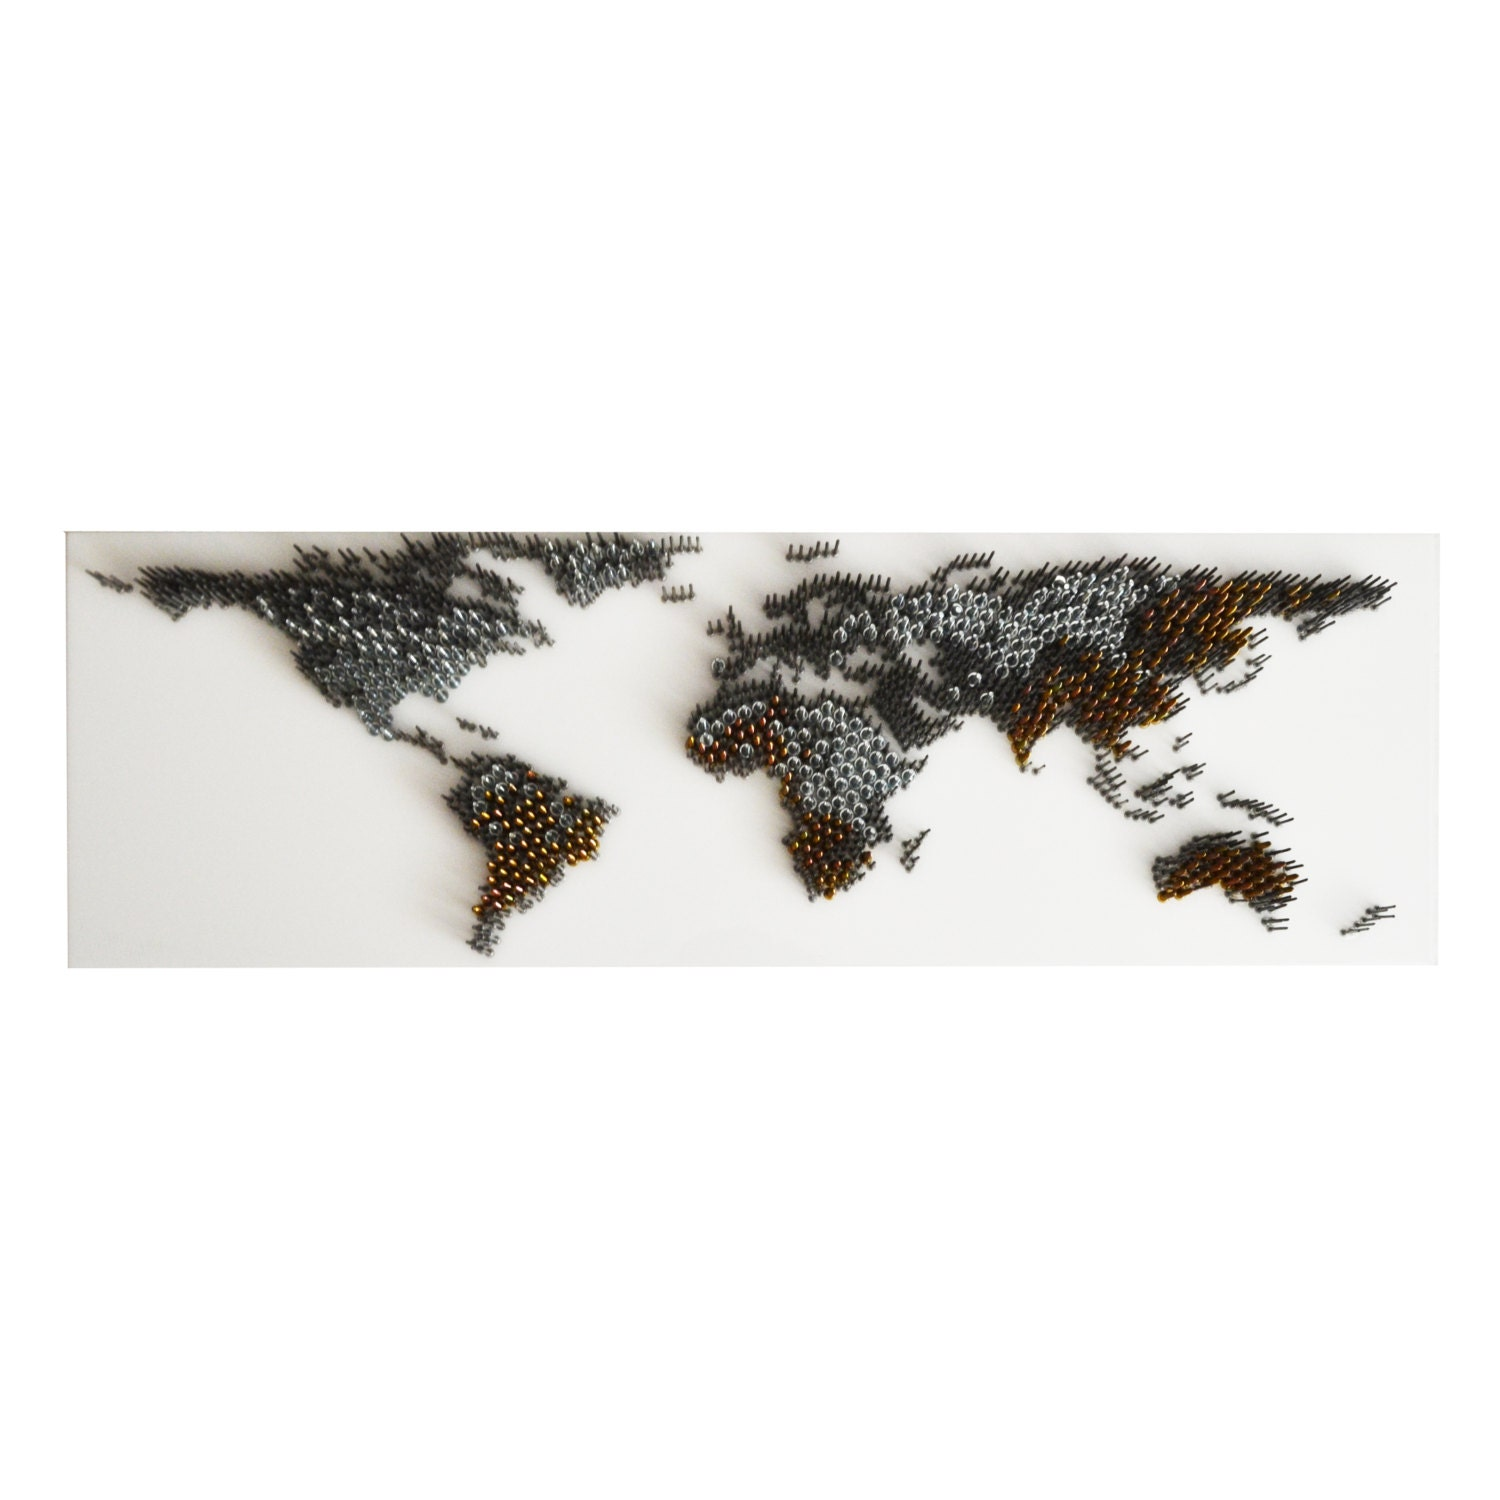 World map contemporary wall sculpture 3d metal nails wall for Decor mural metal